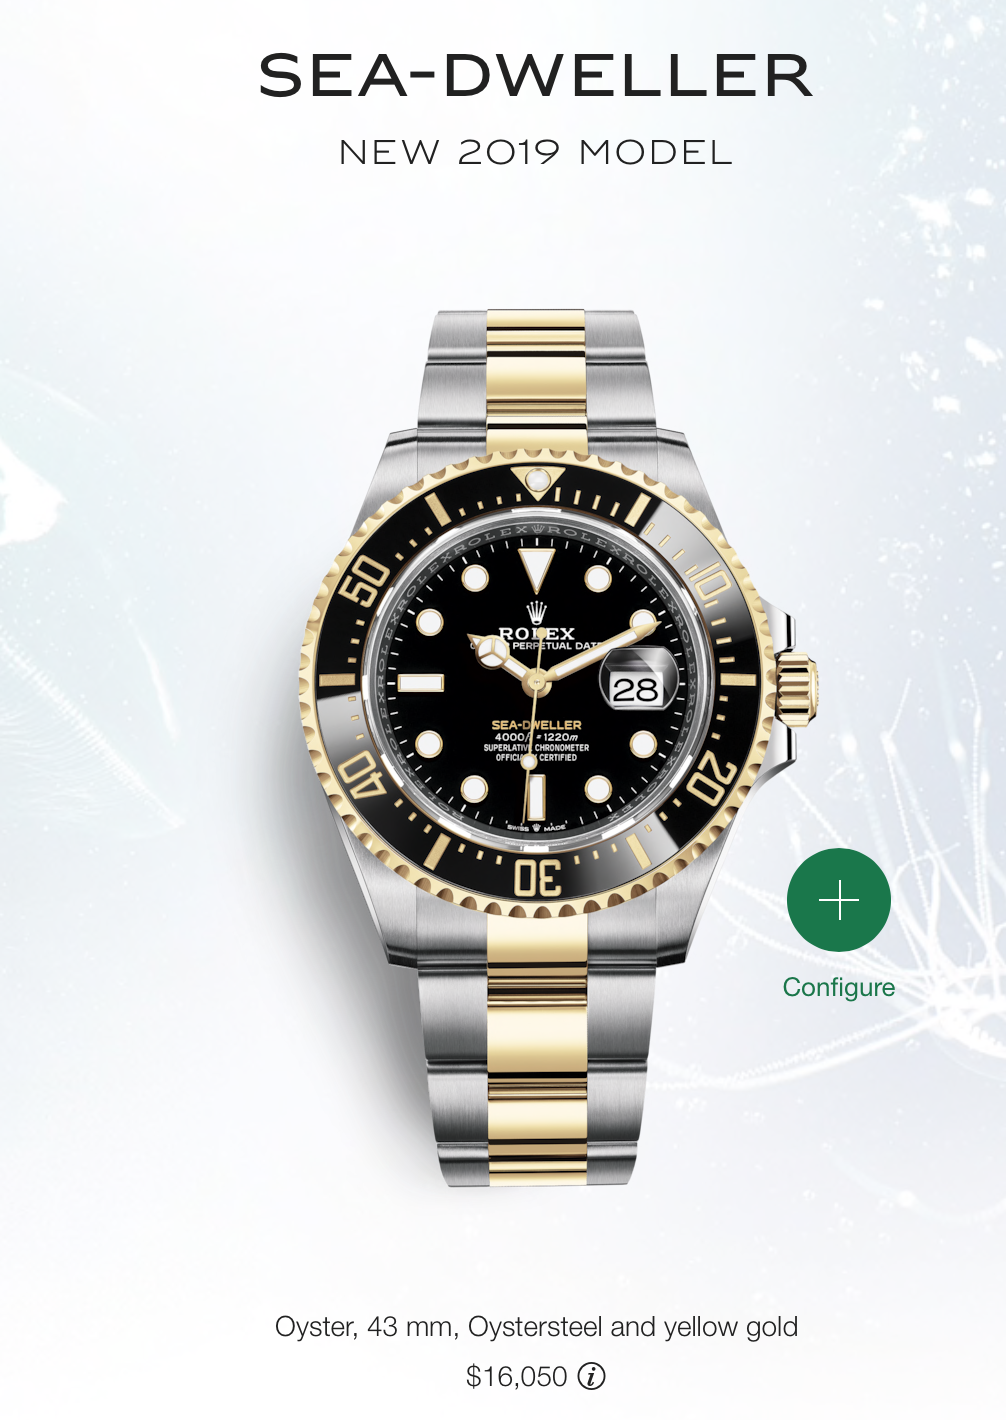 Two-tone rolex sea dweller.